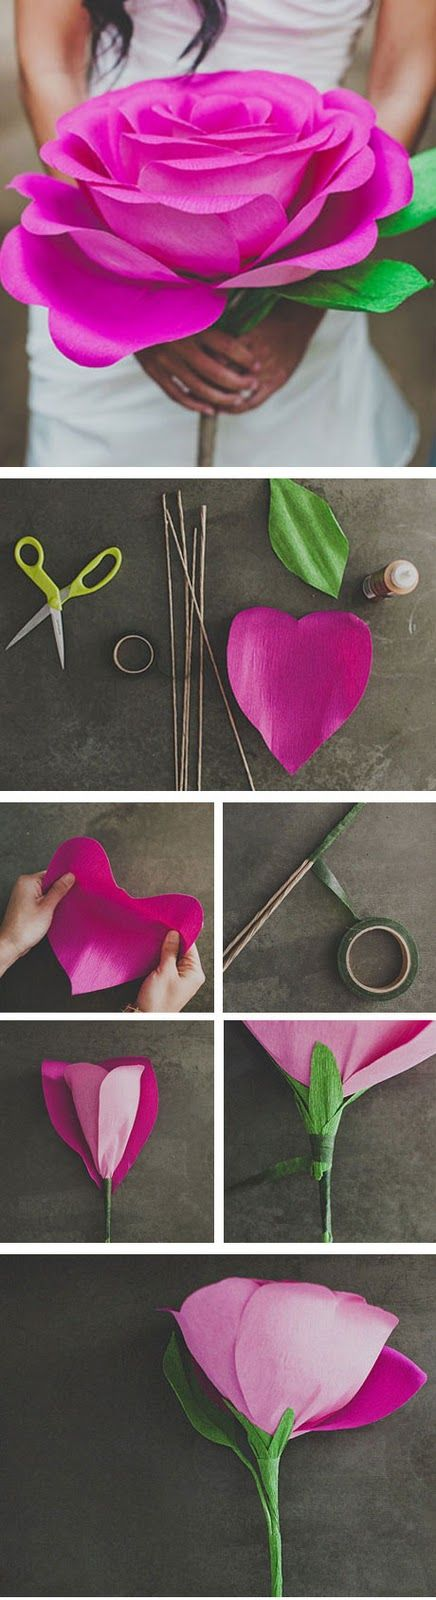 DIY: Giant Paper Rose Flower